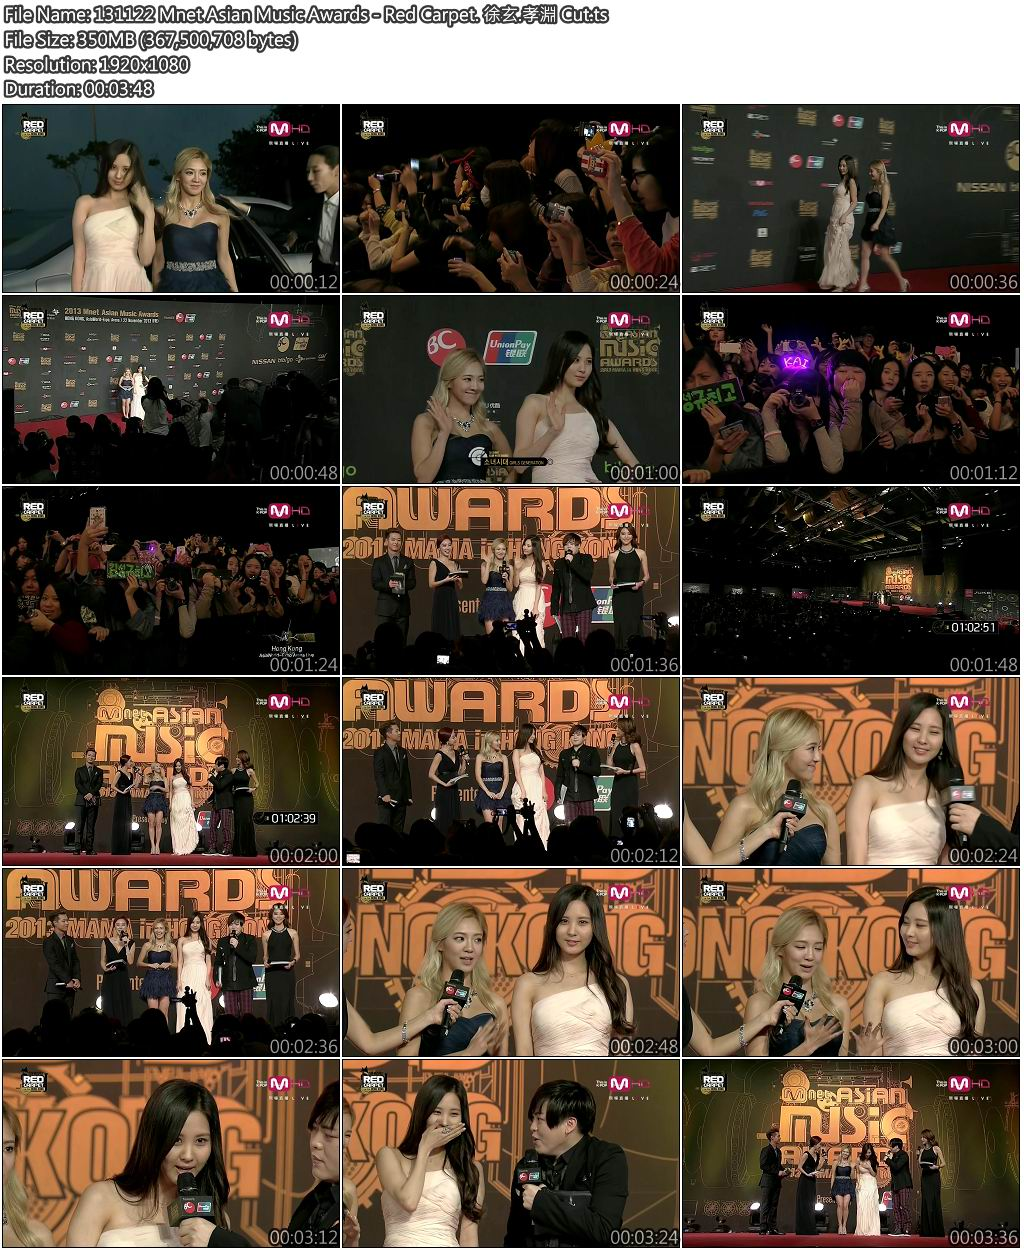 131122 Mnet Asian Music Awards - Red Carpet. 徐玄.孝淵 Cut.jpg